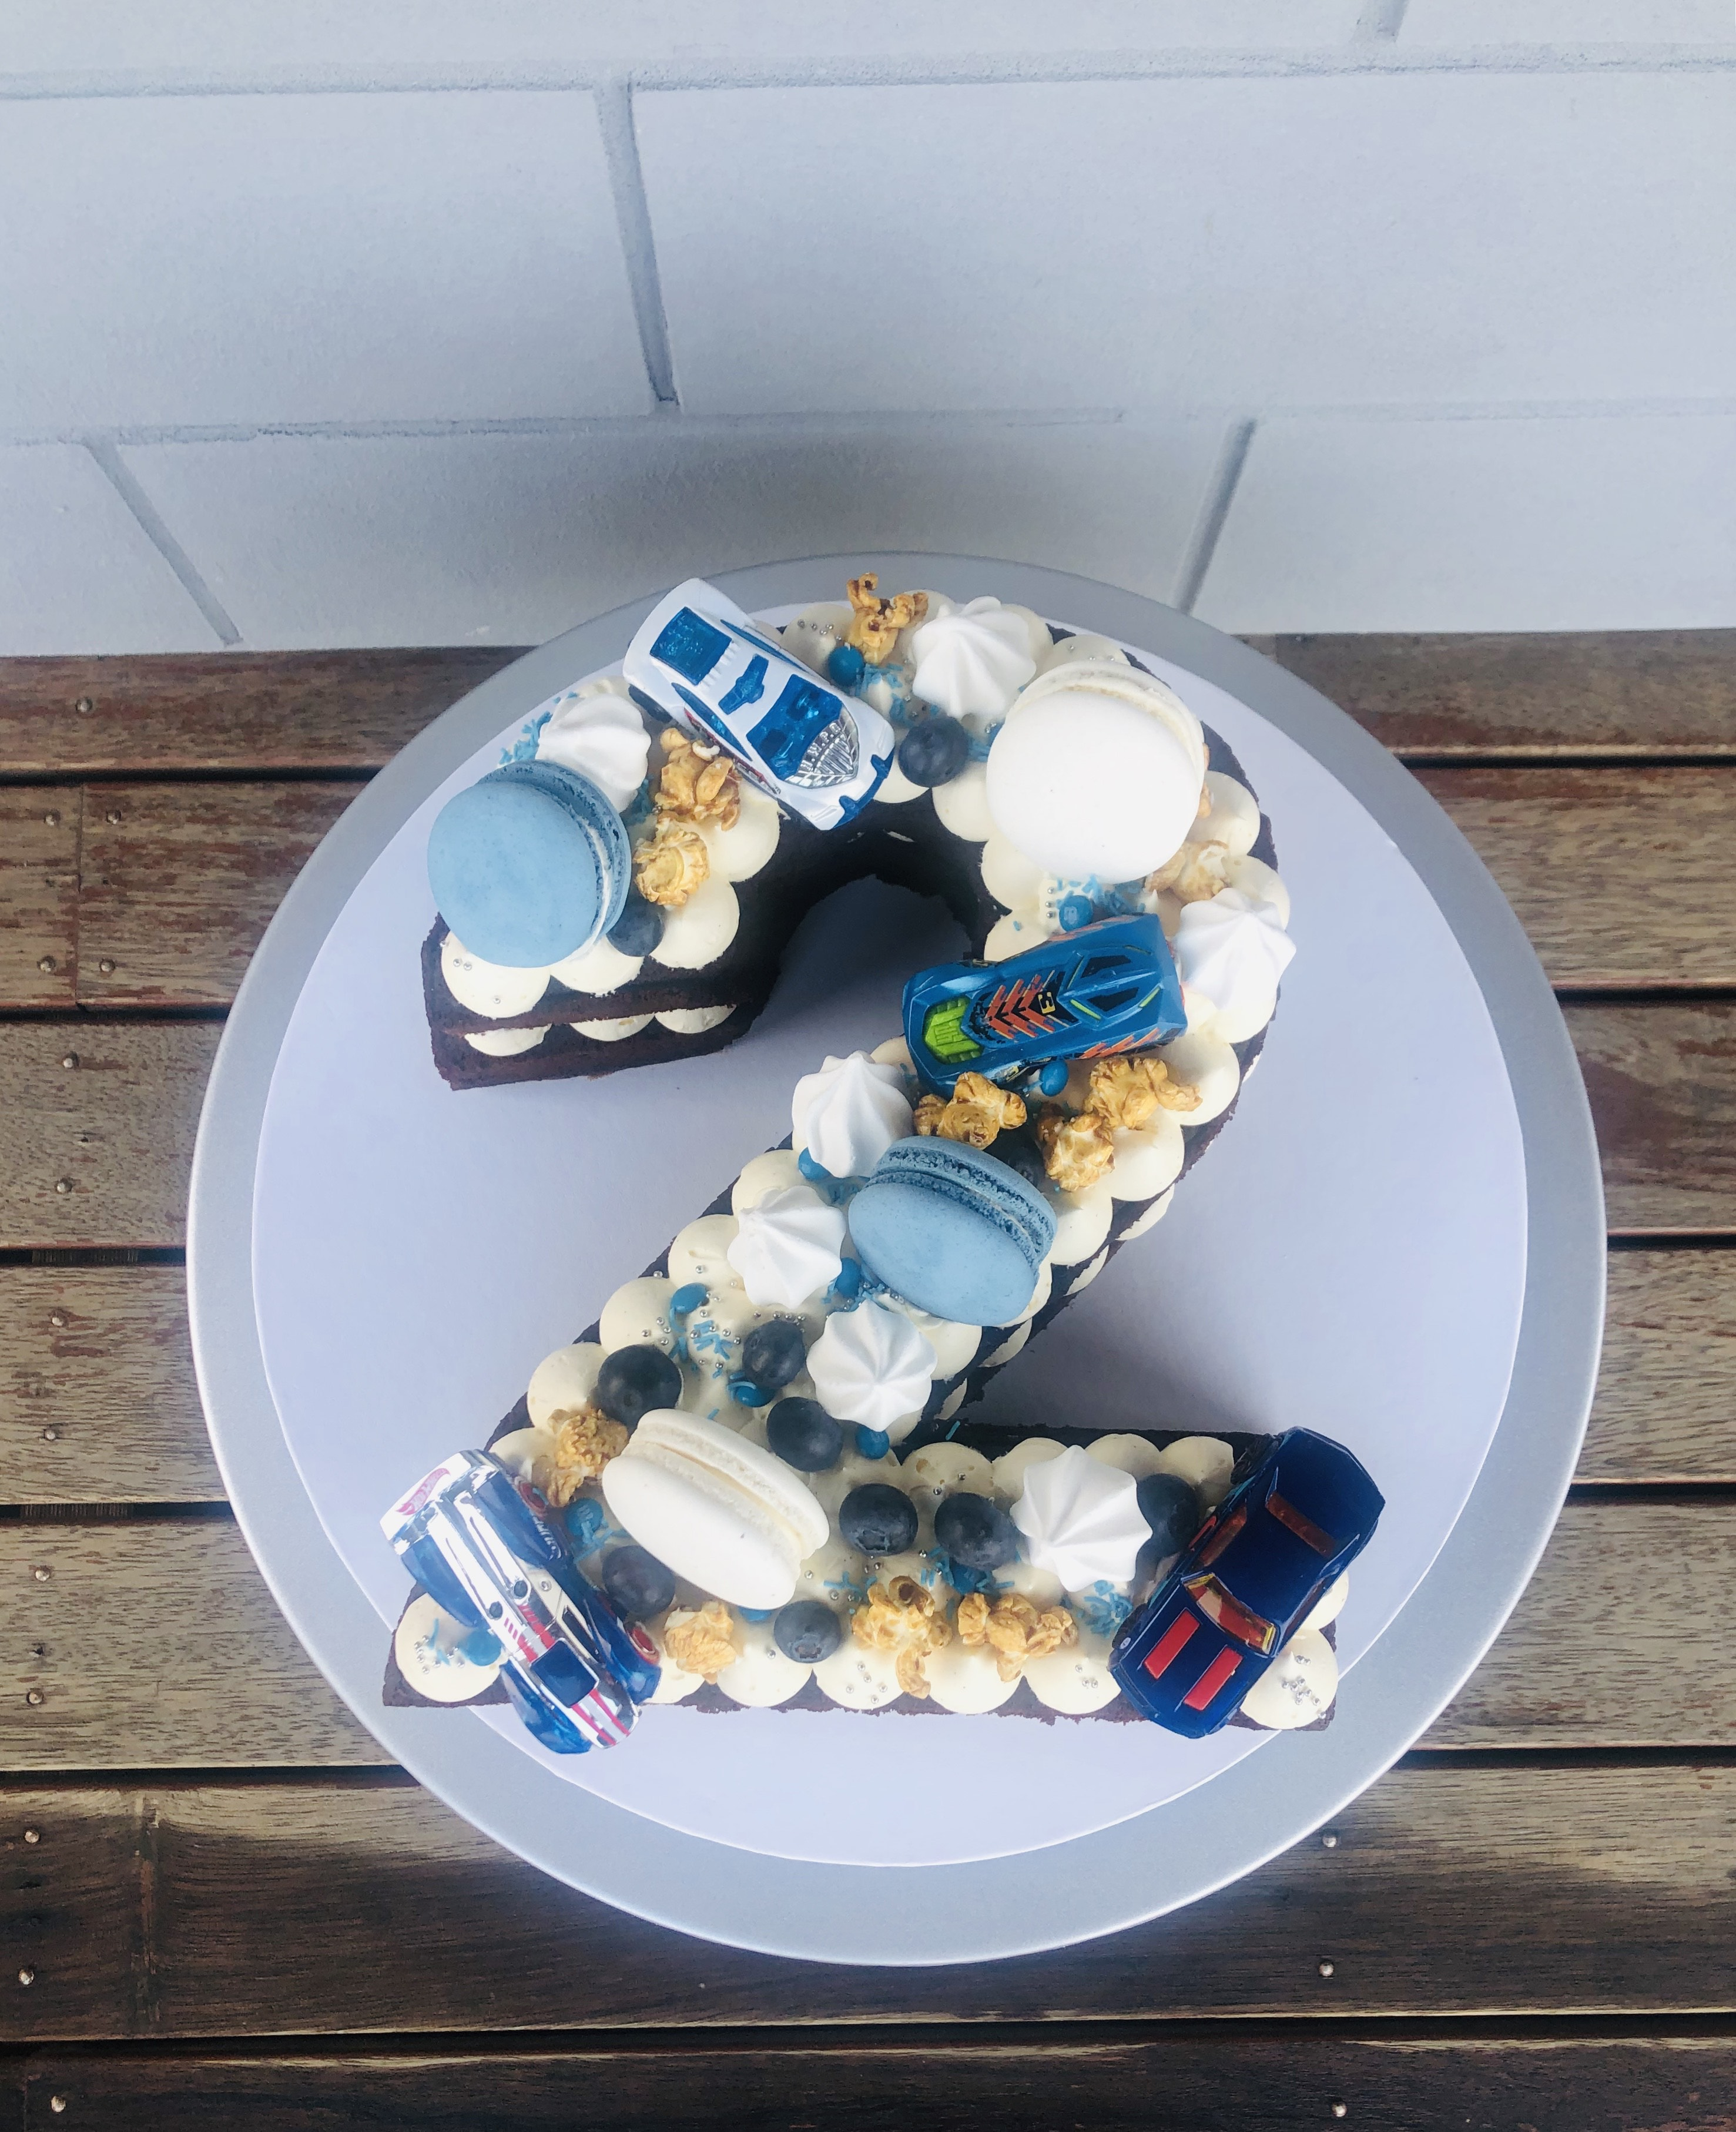 '2' Digit Cake Blue Theme with MatchBox